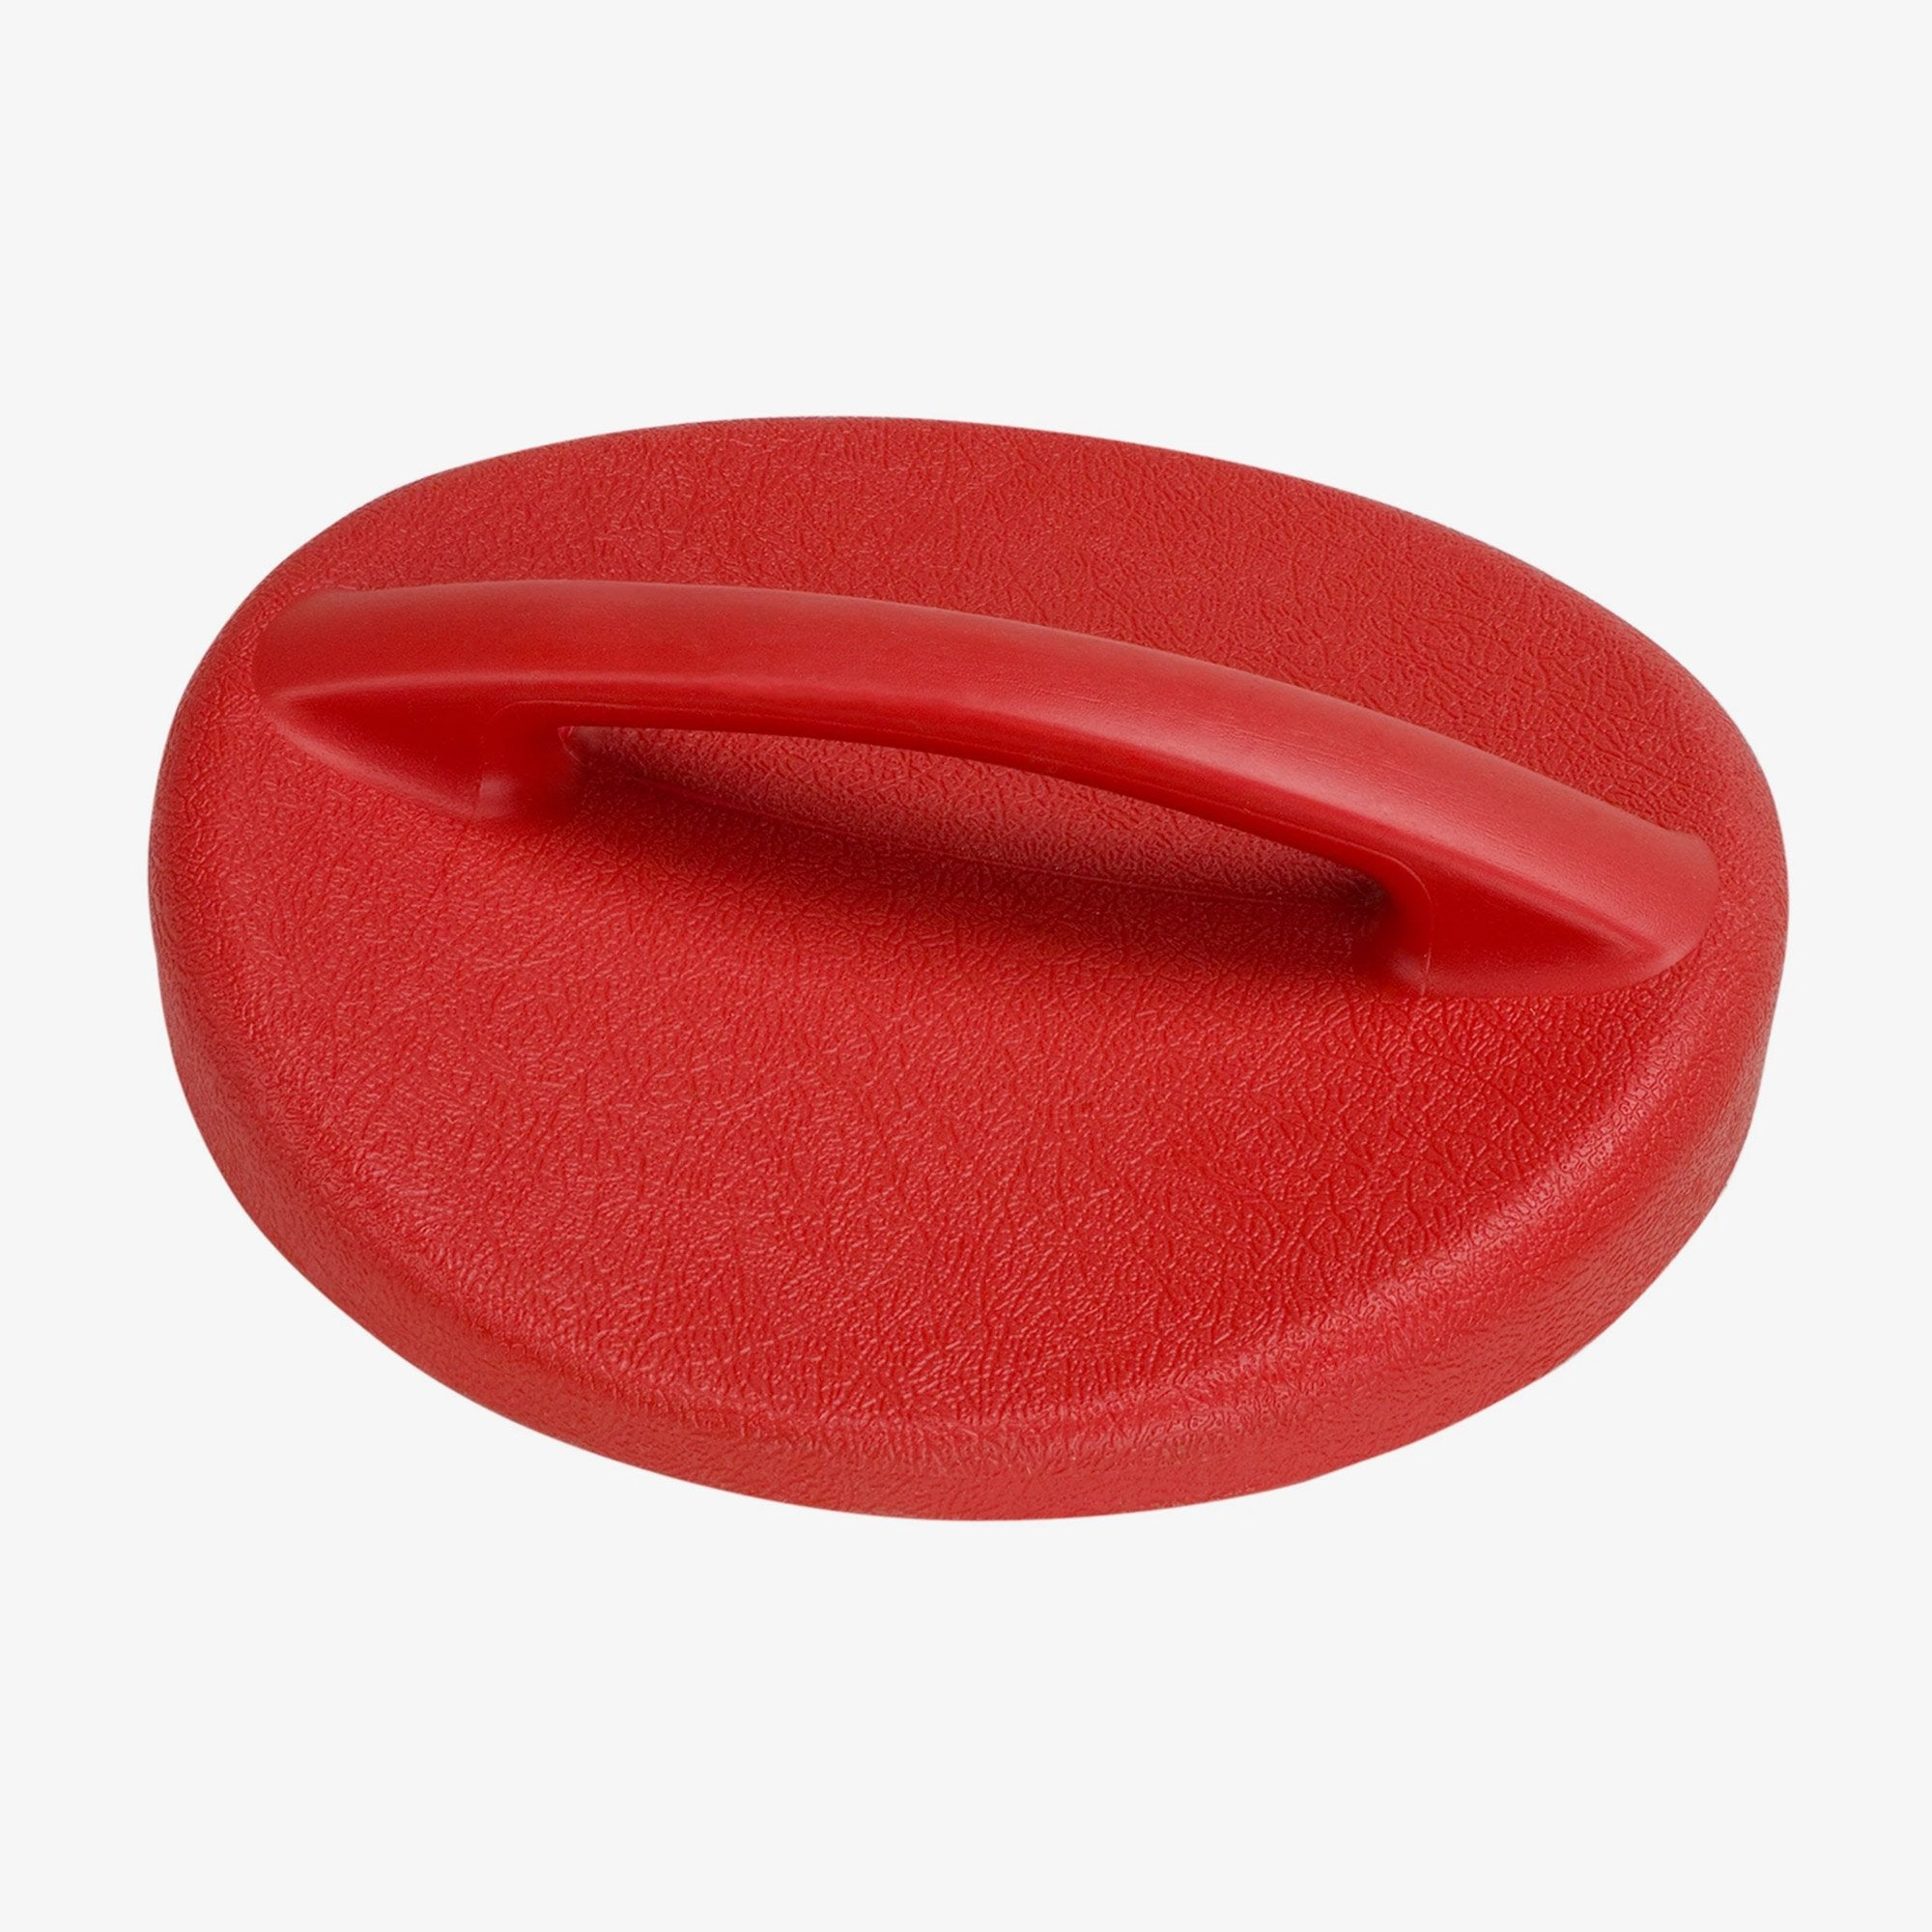 Large View | Lid For 10 Gallon 400 Series Water Jugs in Red at Igloo Replacement Parts